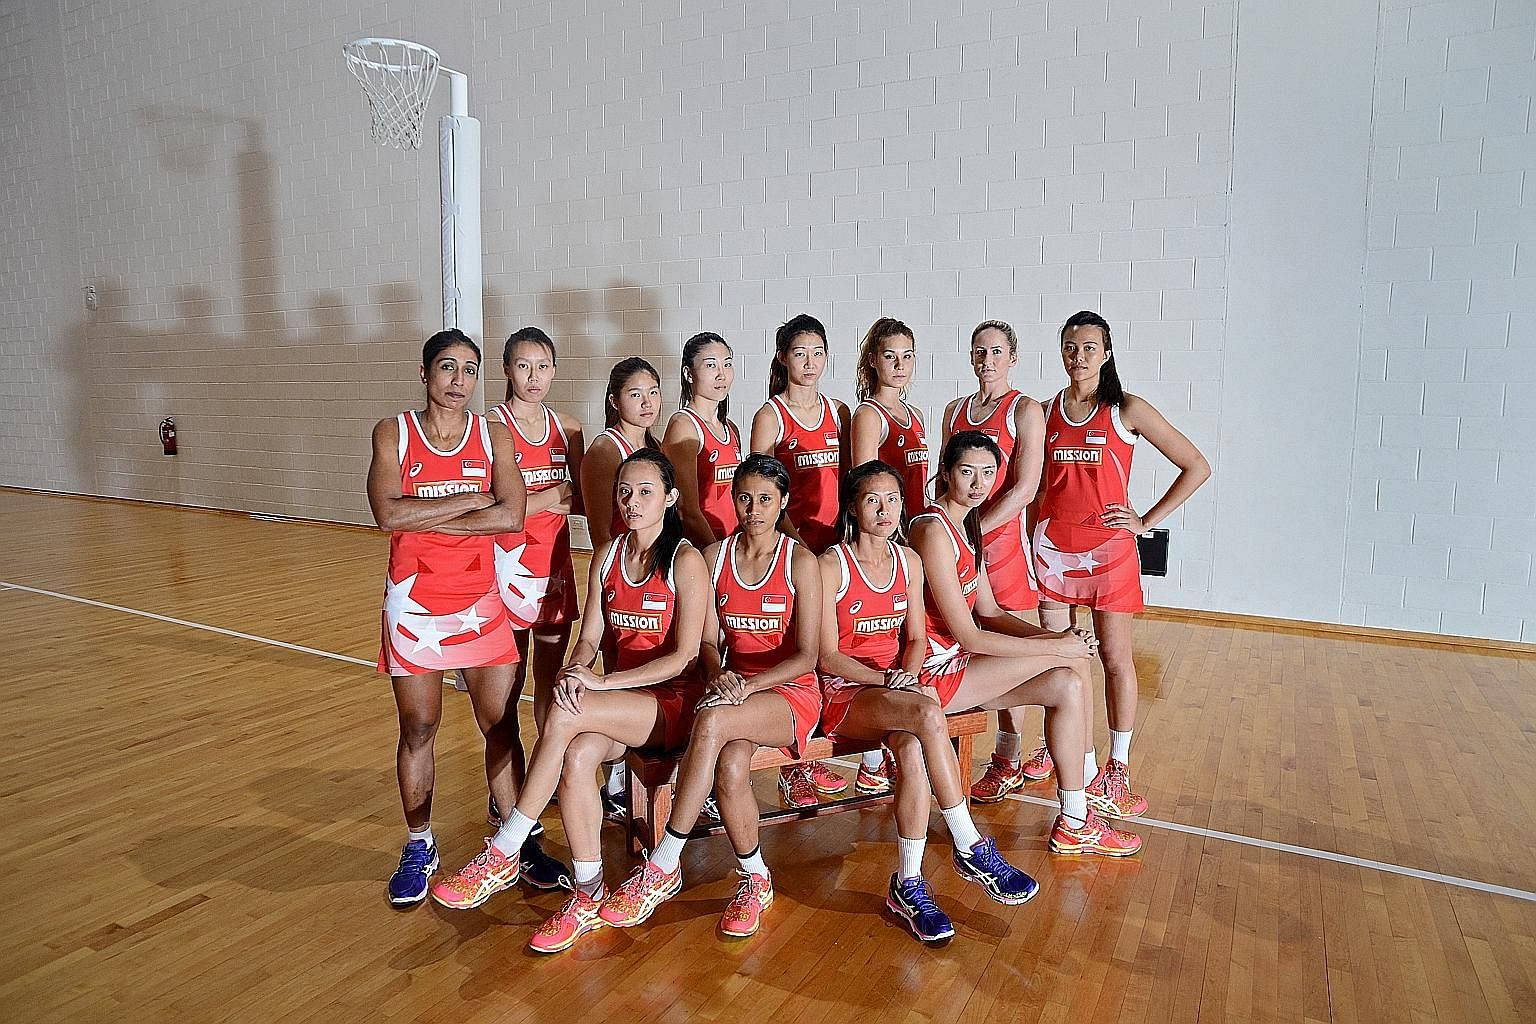 The Singapore netball team are on the right track, having risen from 21st in the world four years ago to No. 15 and winning the SEA Games gold on home soil in June.